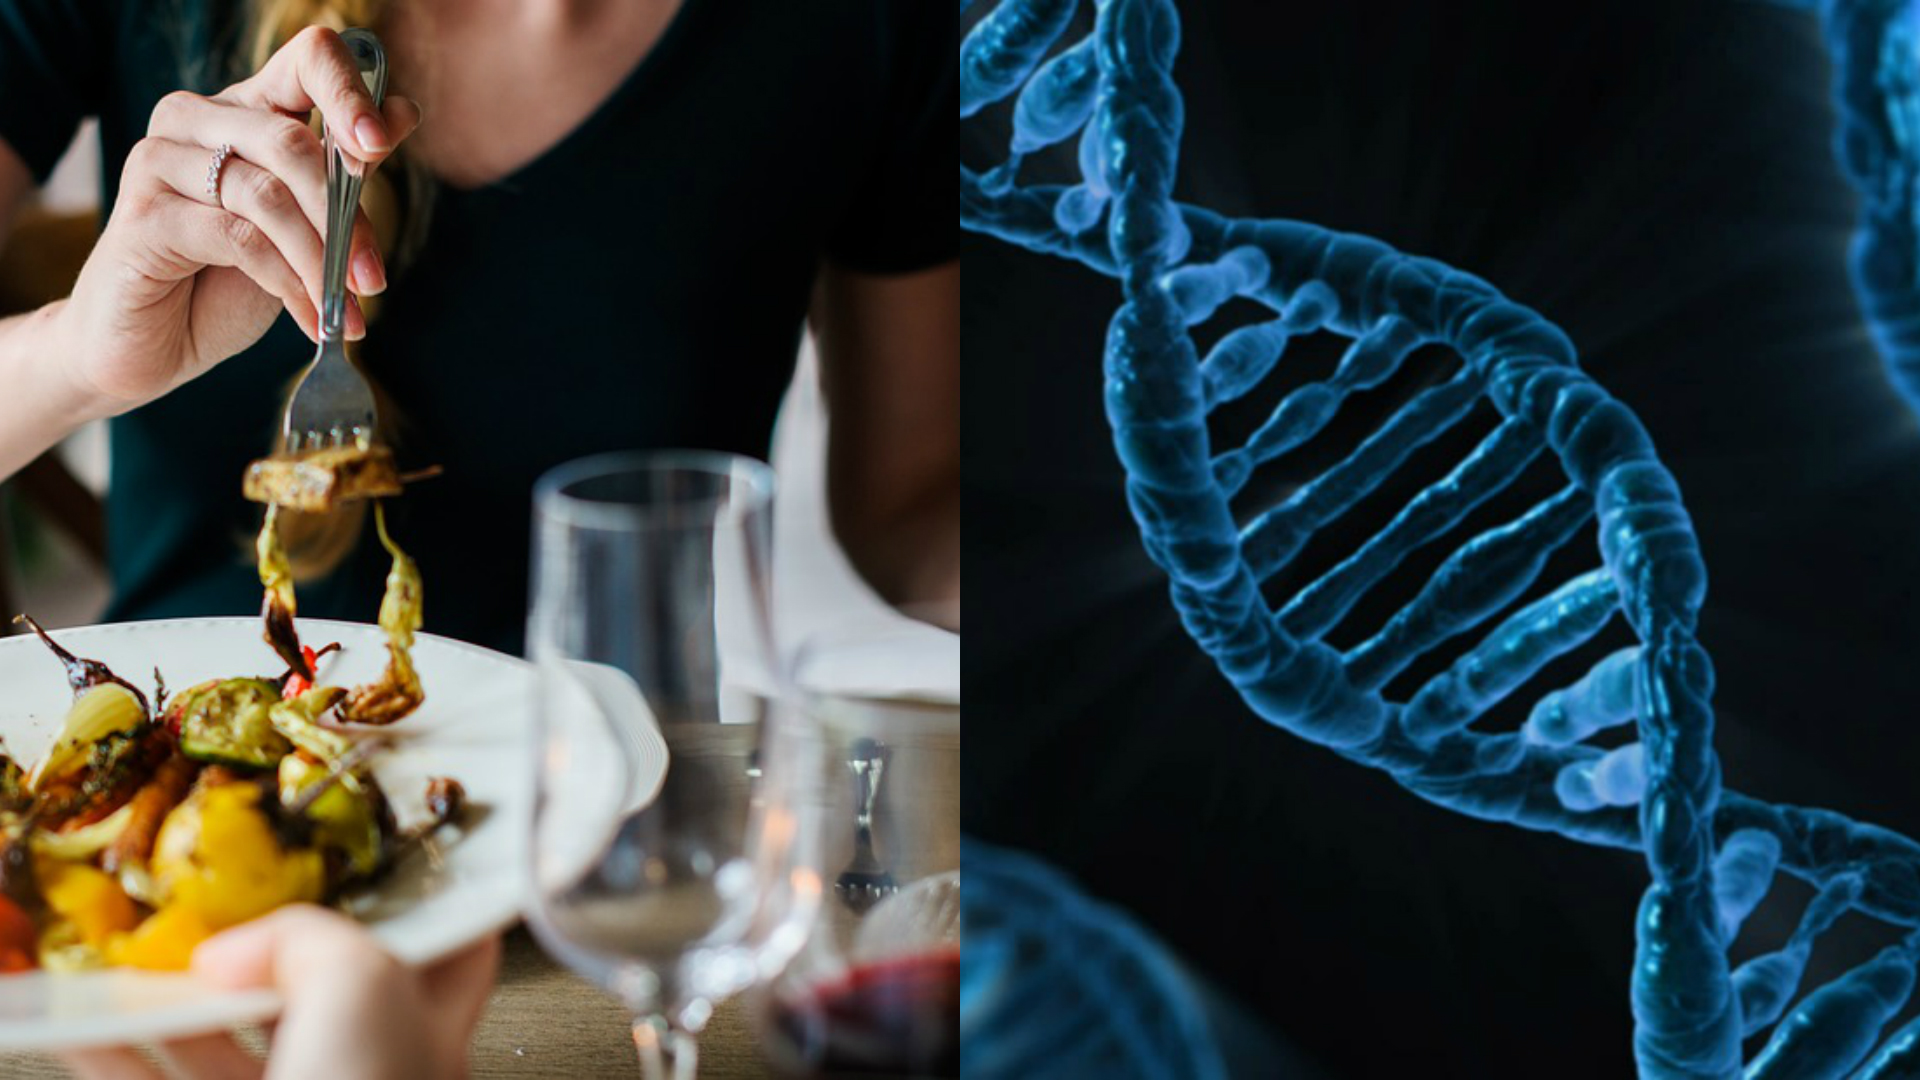 dna and food